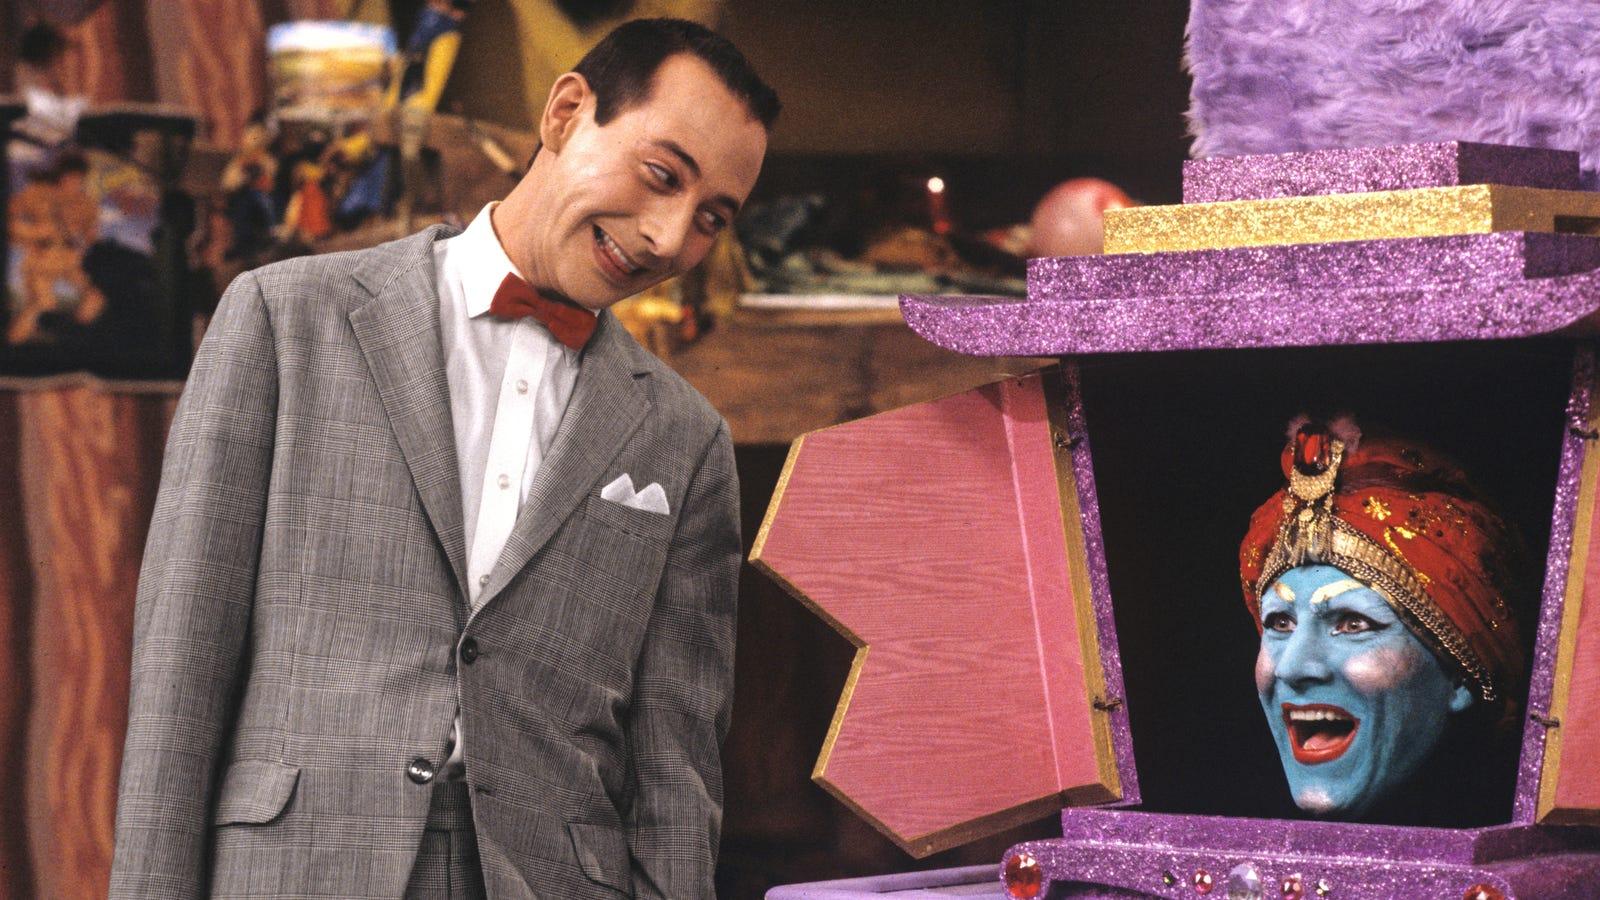 Scream real loud! Pee Wee's Playhouse is returning to TV